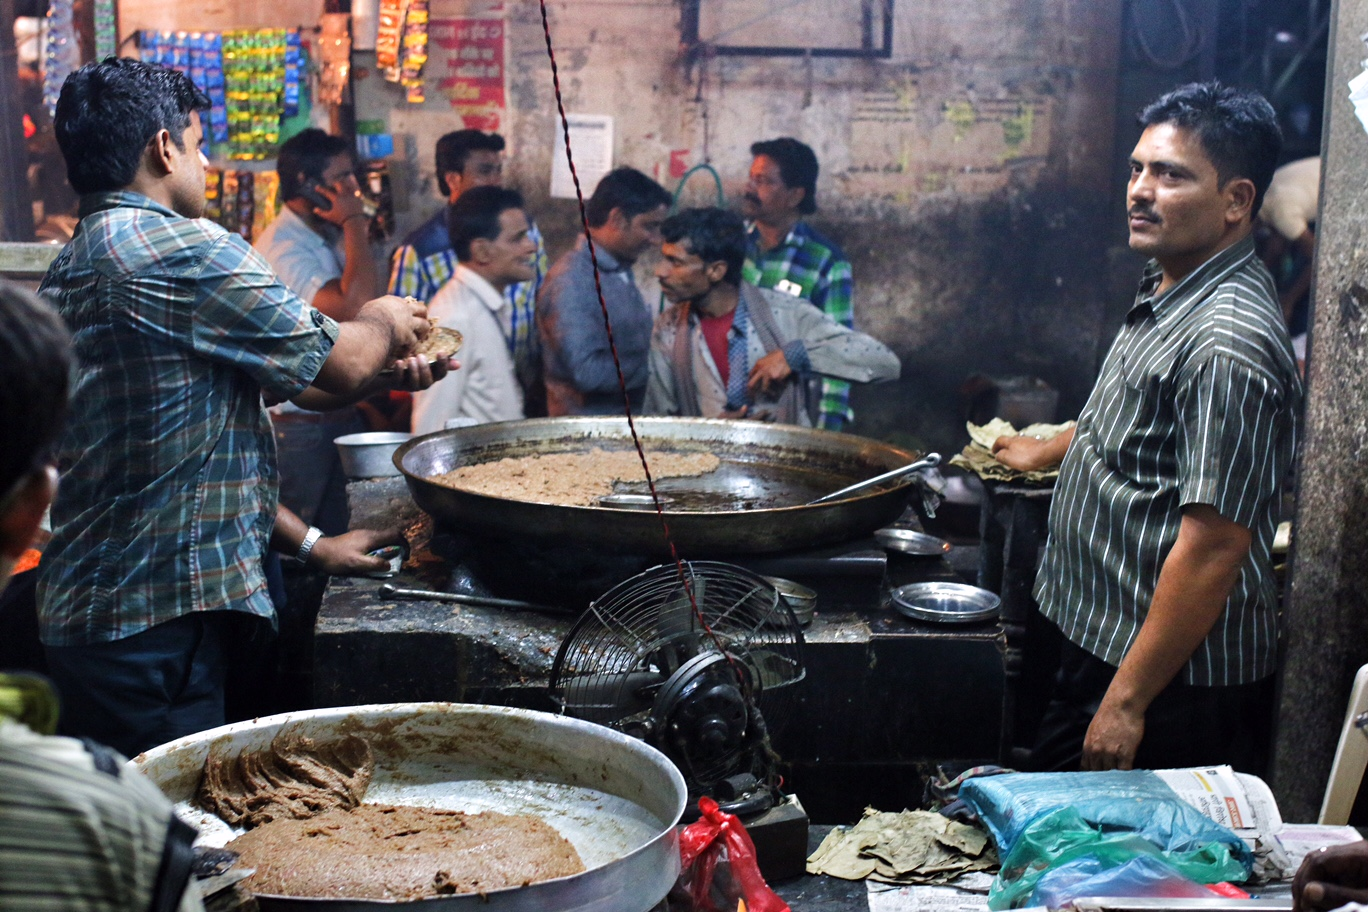 Street food of lucknow tunday kebab and other top food tips for a tunday kebab street food lucknow chowk forumfinder Images